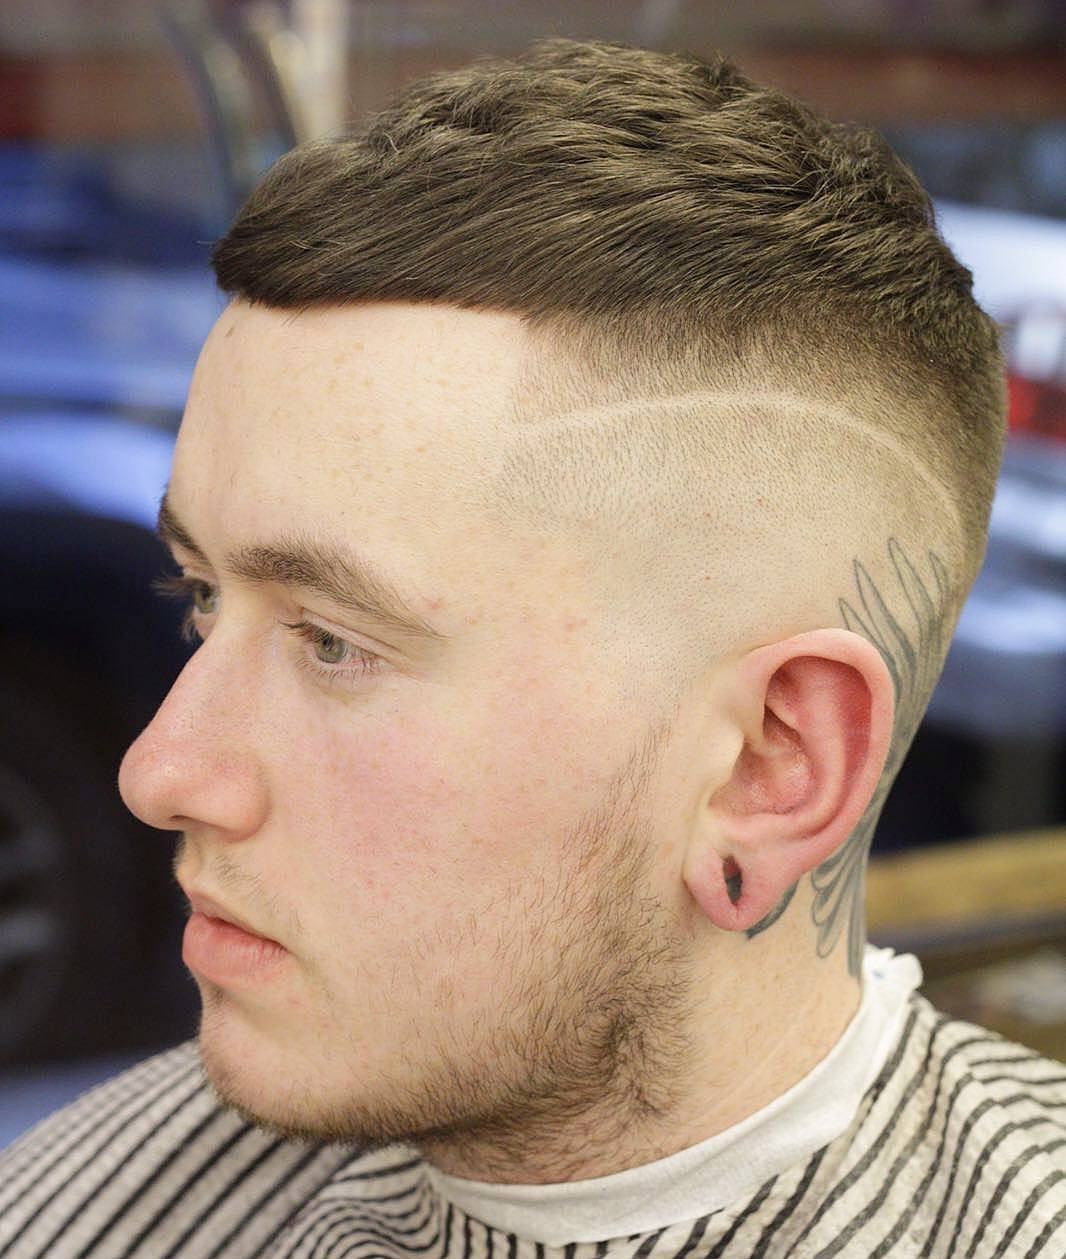 Short Haircuts For Boys  20 Very Short Haircuts for Men